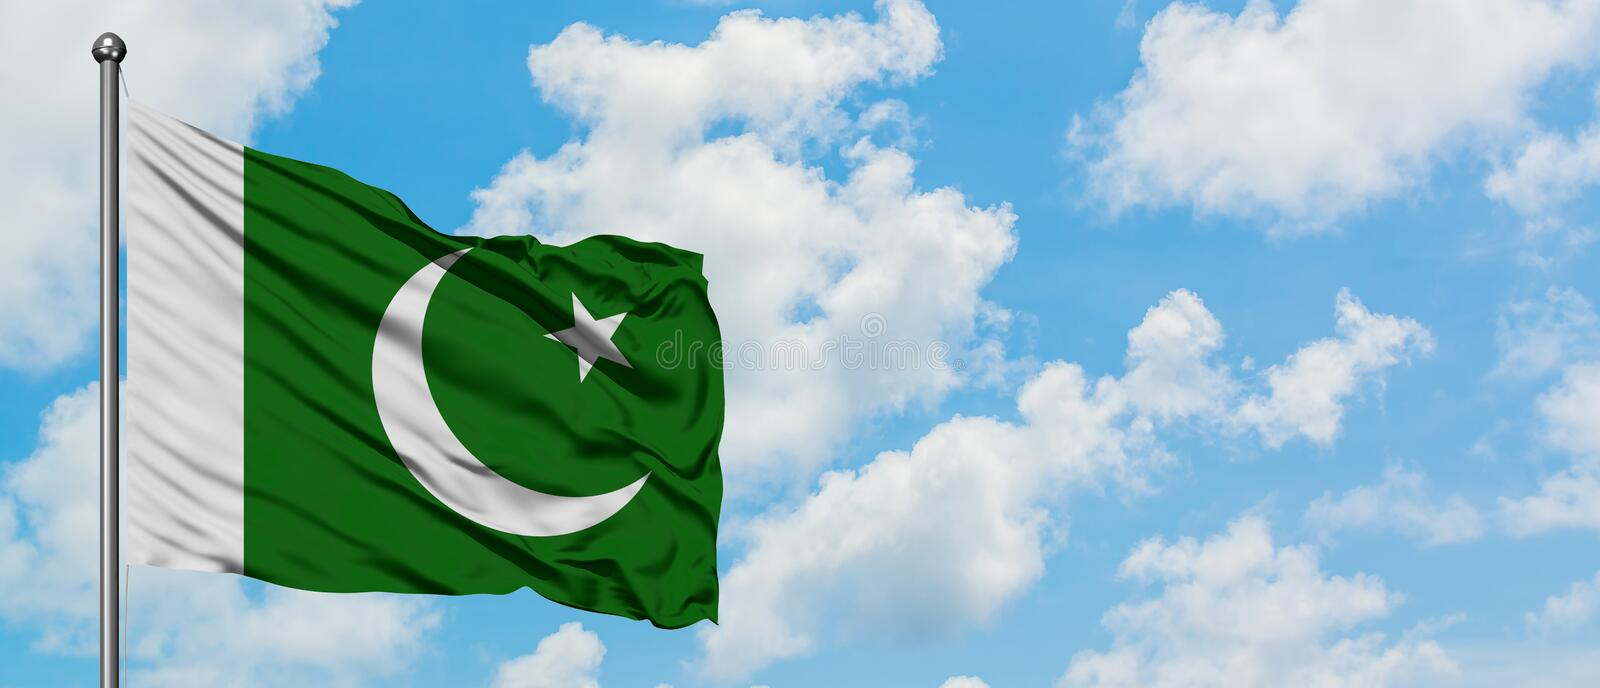 Pakistan flag waving in the wind against white cloudy blue sky. Diplomacy concept, international relations.  stock photo